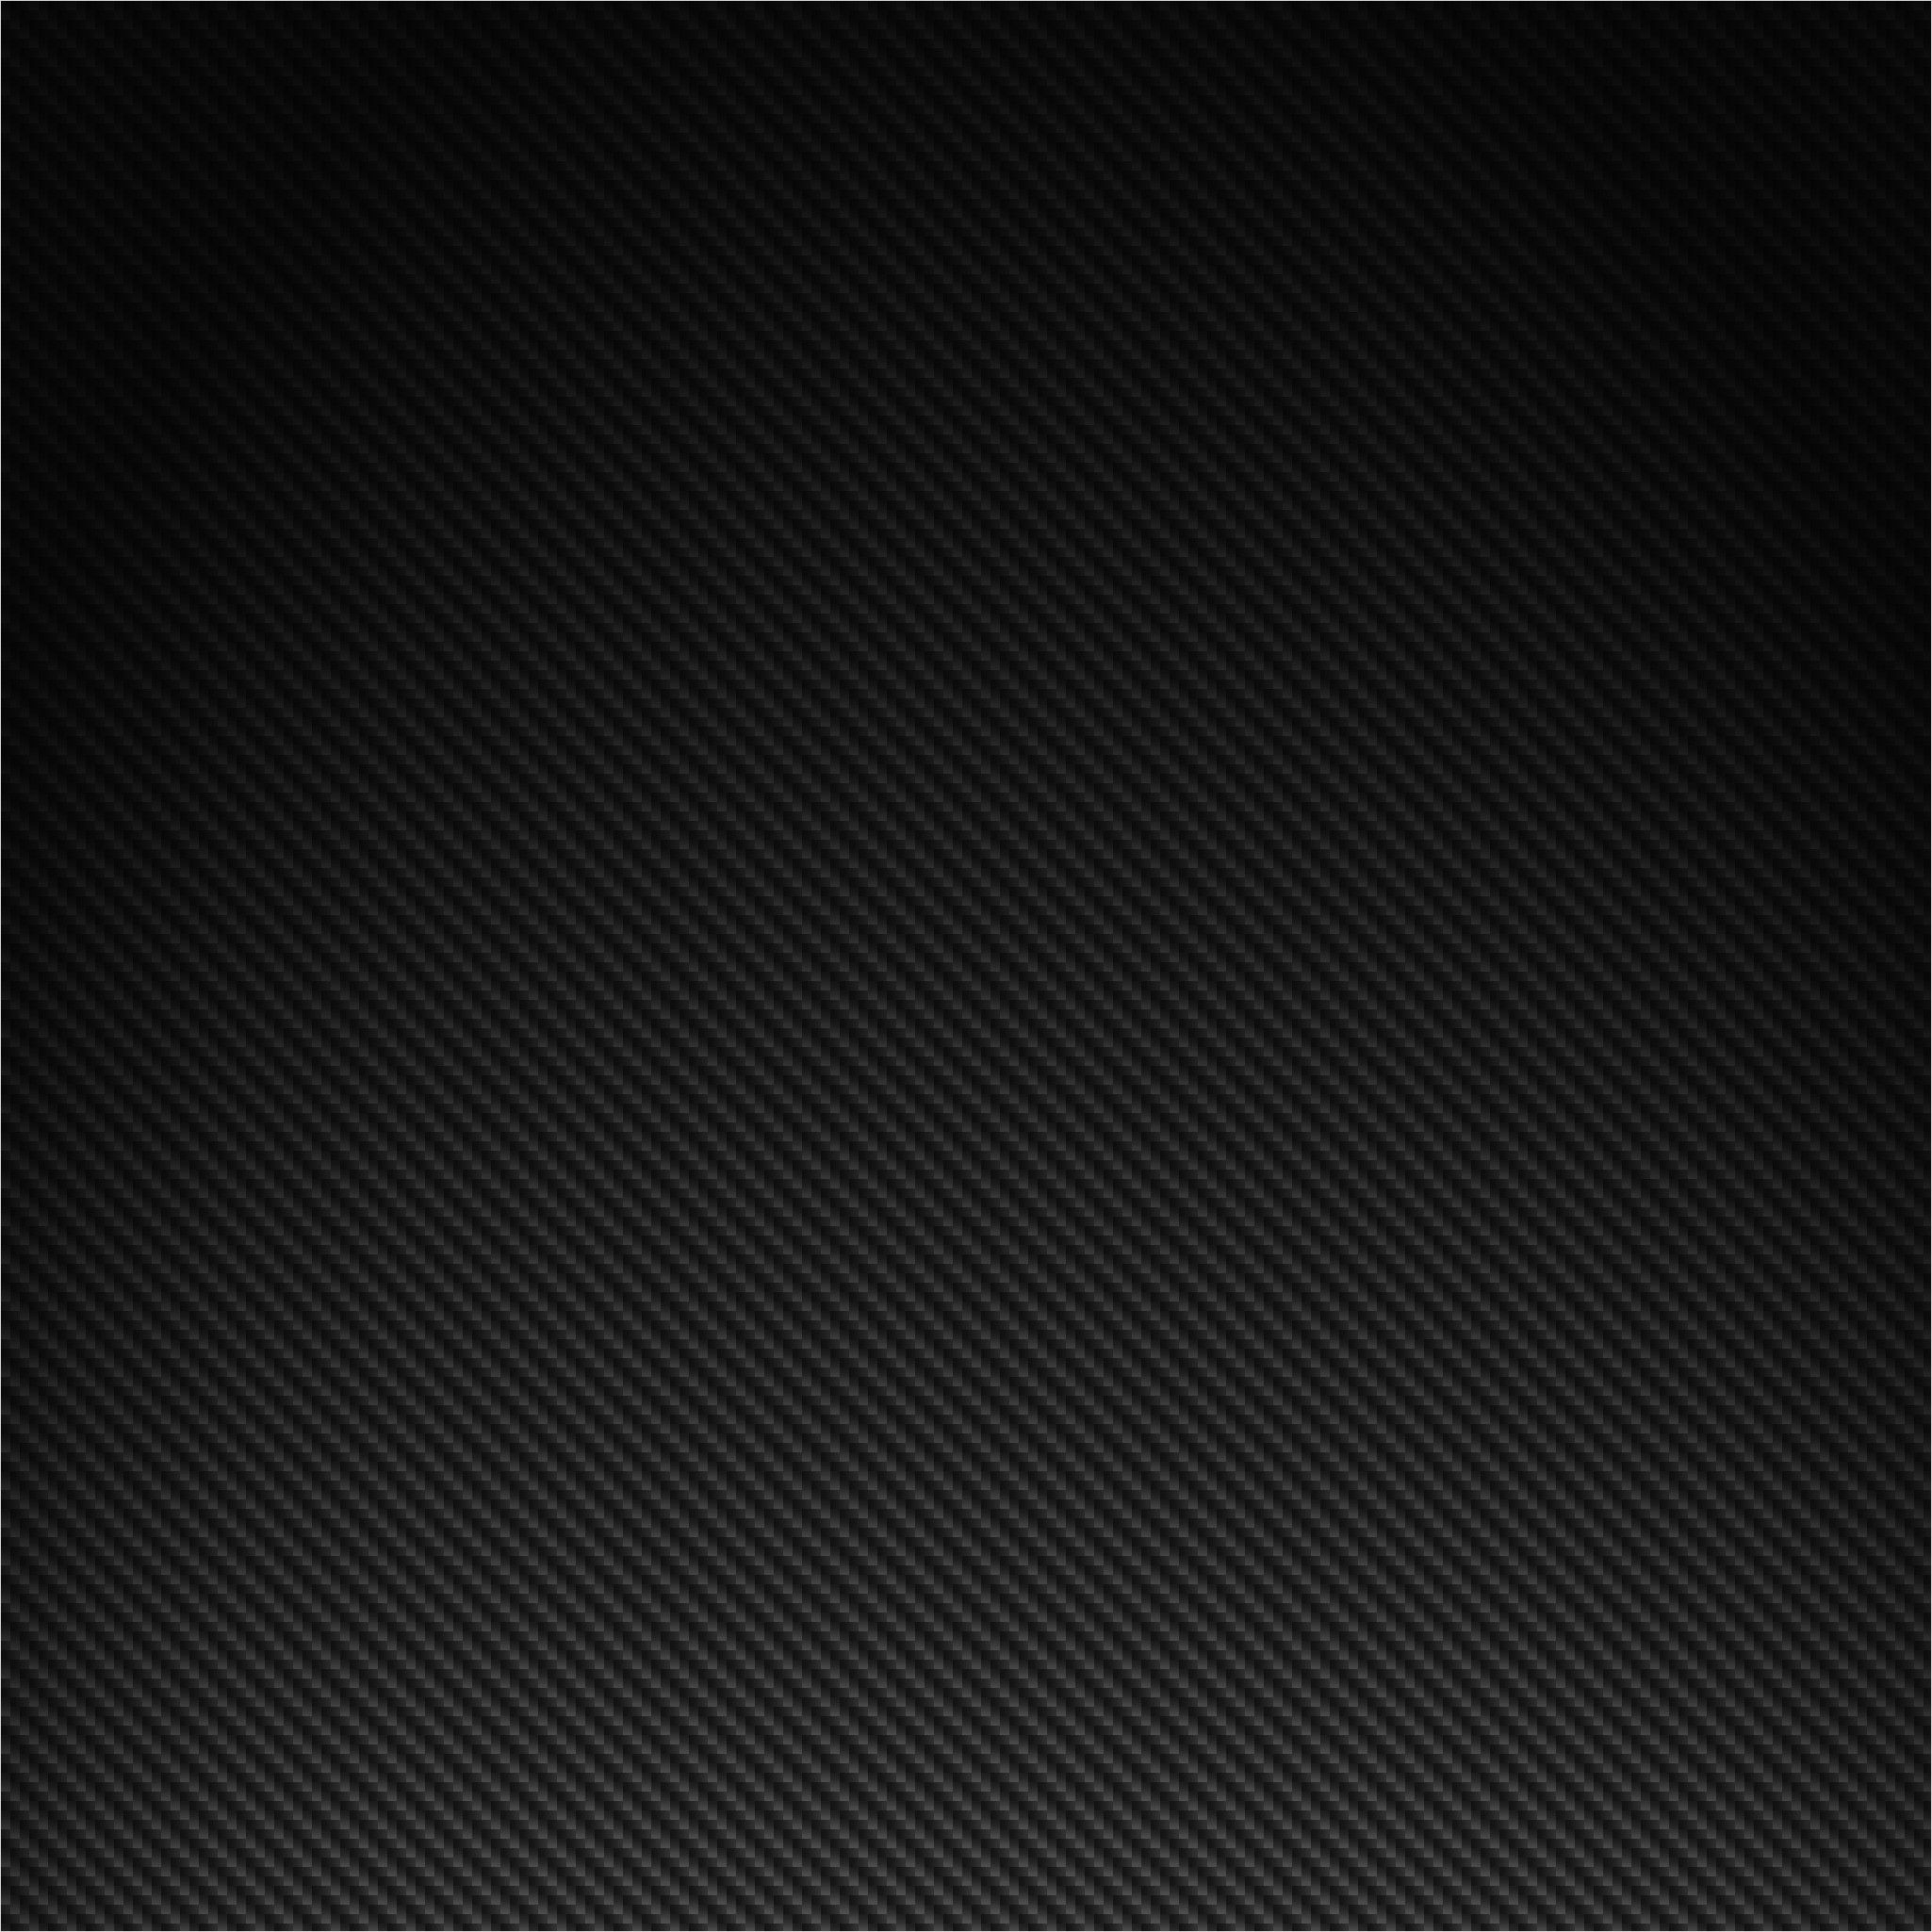 4k Carbon Fiber Wallpaper In 2020 Carbon Fiber Wallpaper Wallpaper Carbon Fiber